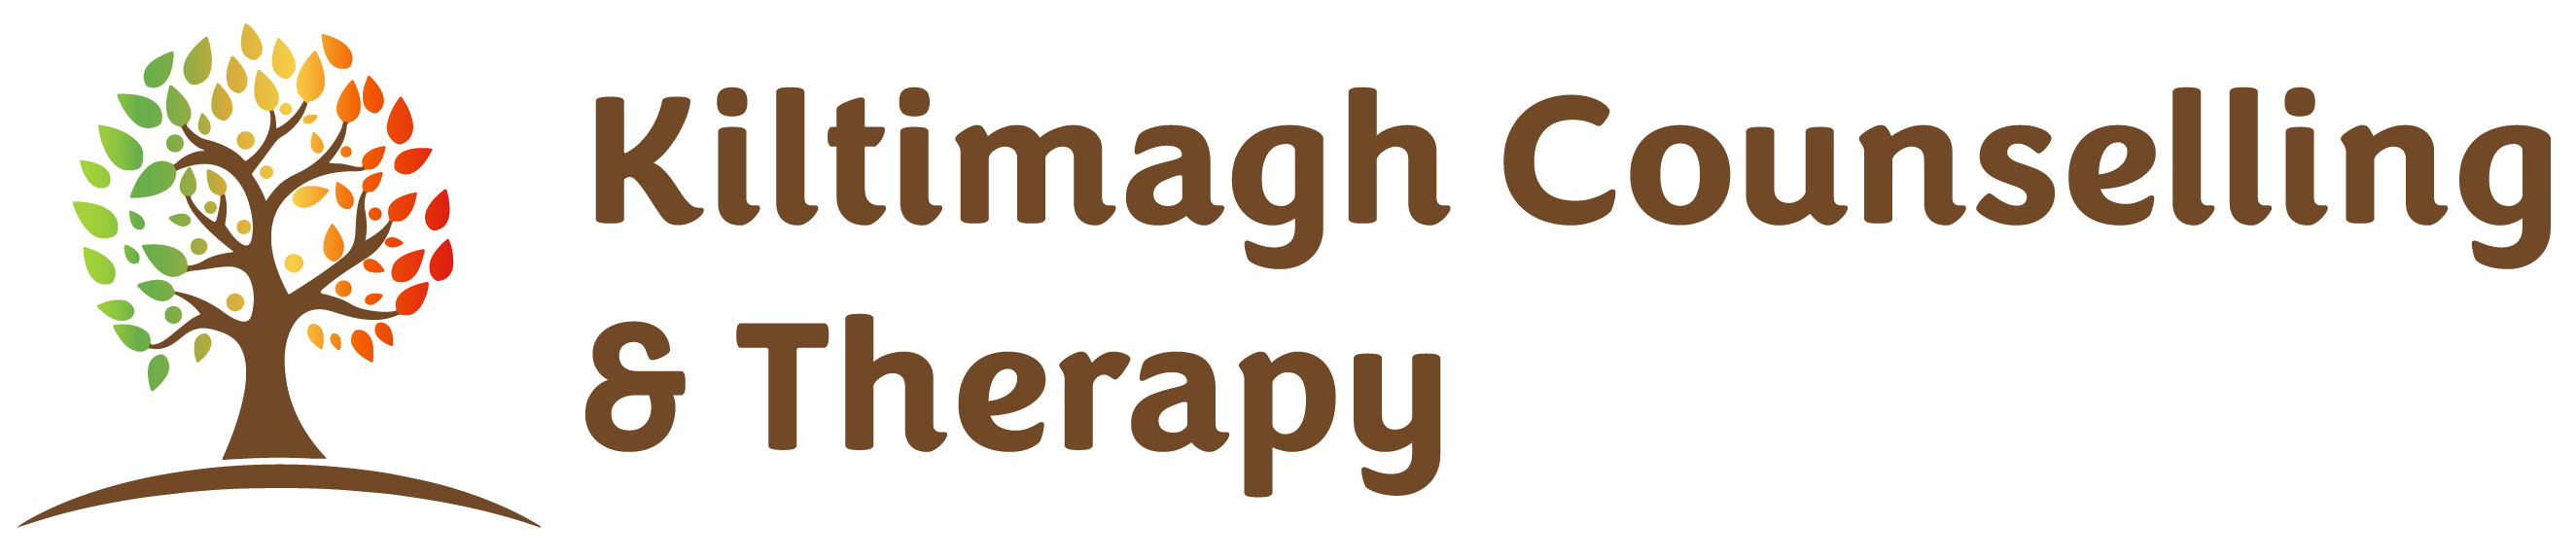 Kiltimagh Counselling & Therapy